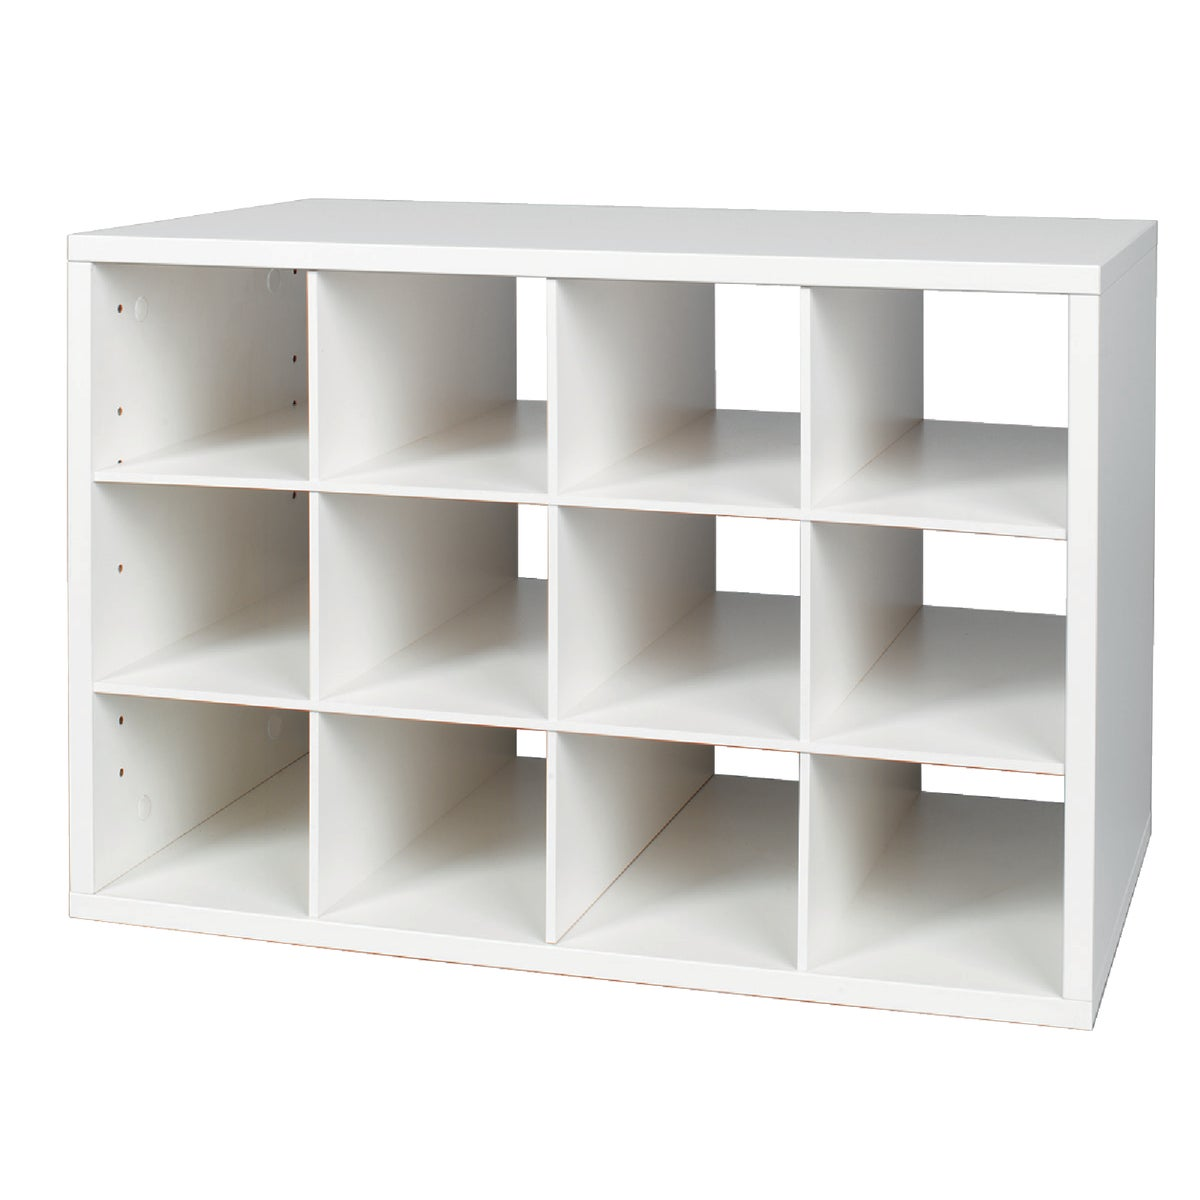 WHITE SHOE CUBBY O-BOX - 7315042411 by Schulte Corp